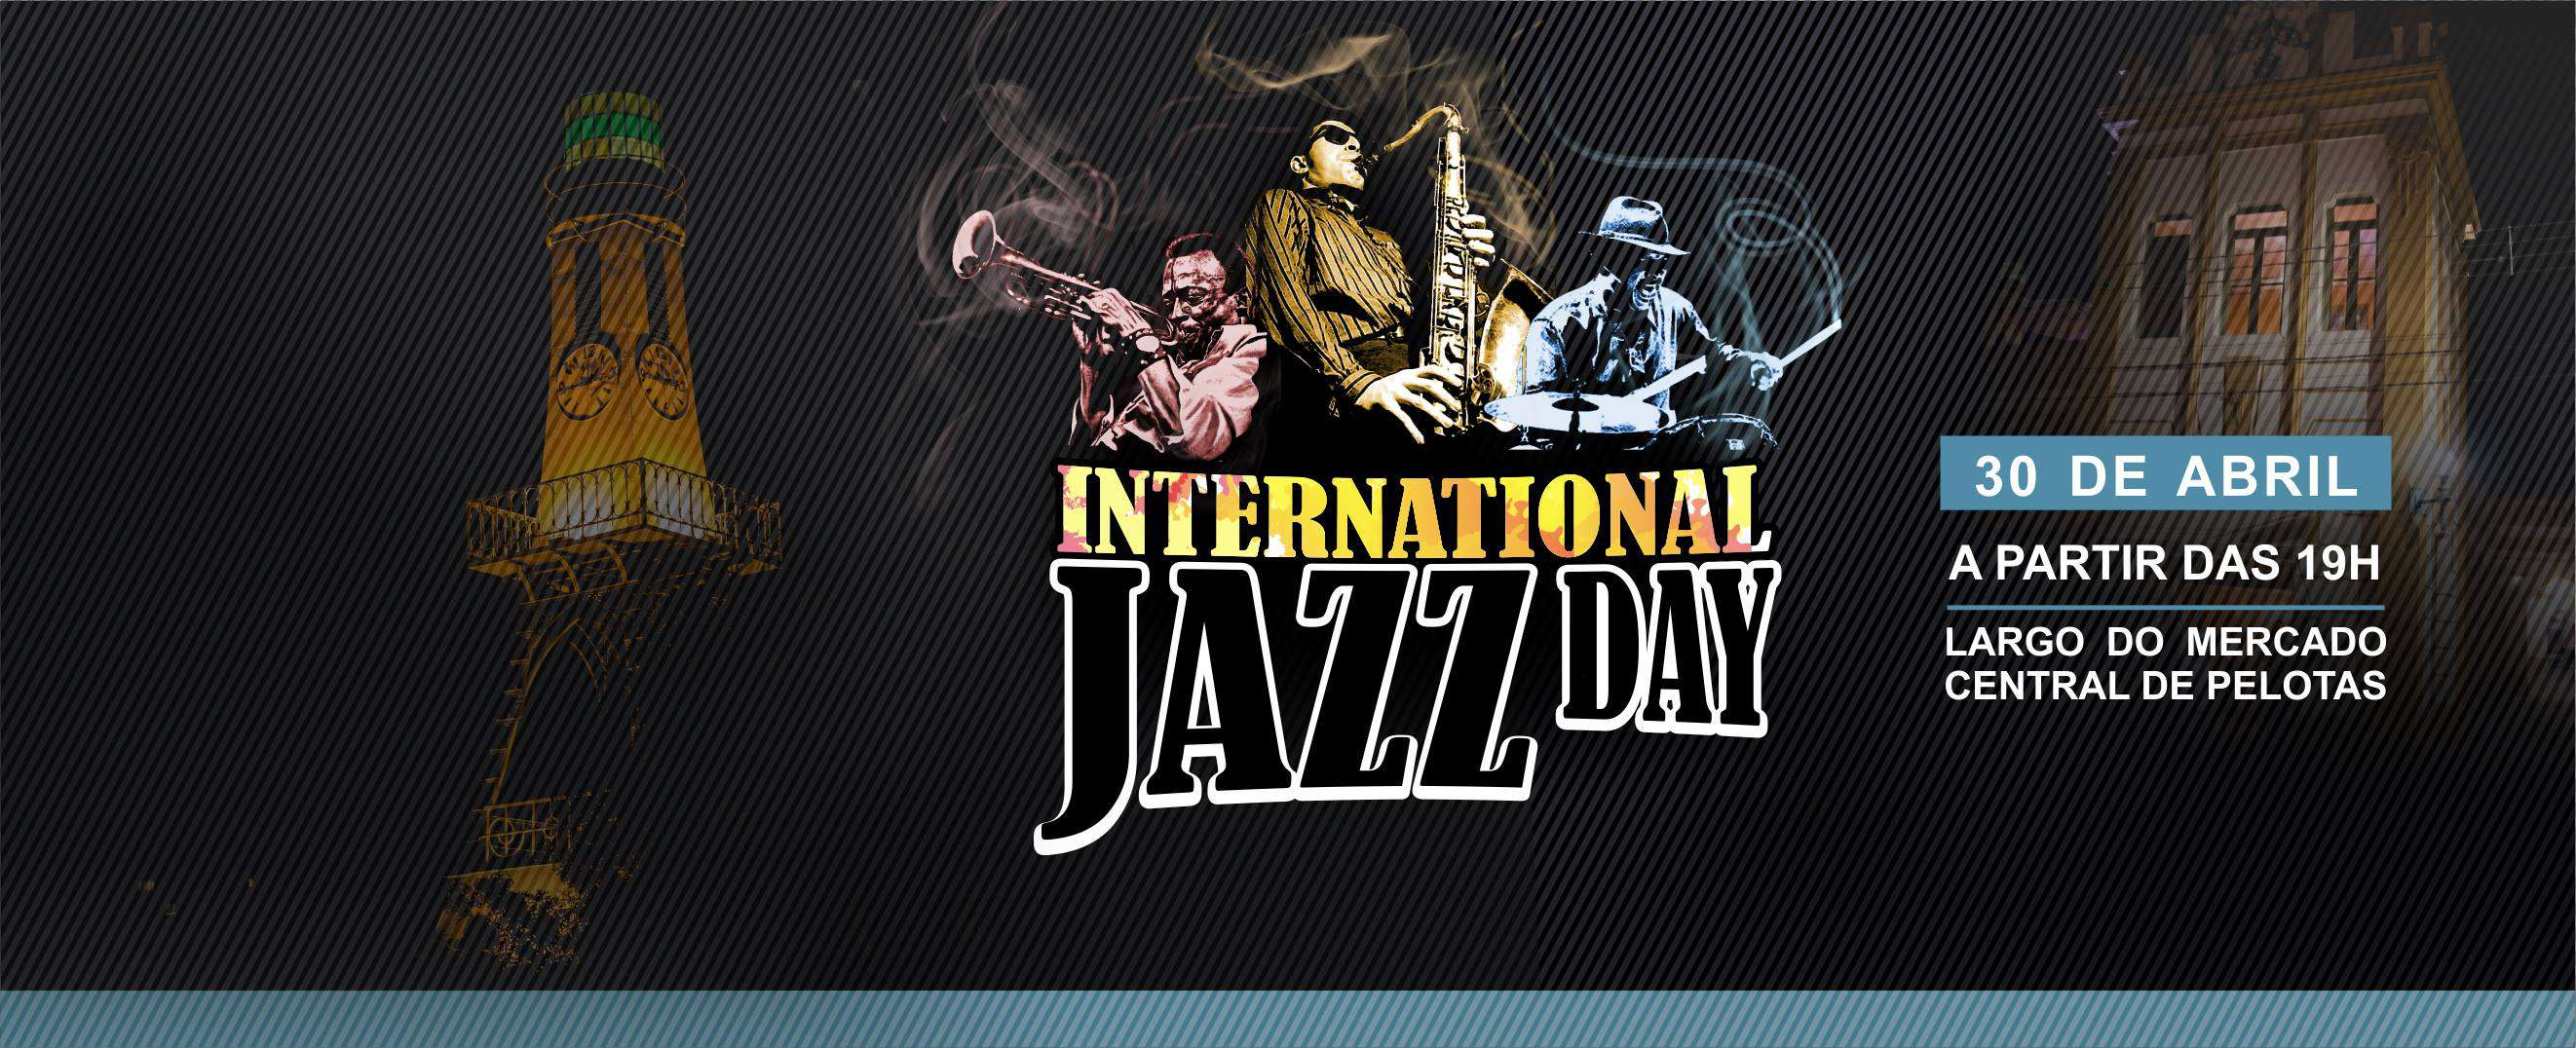 International Jazz Day Wishes Images download